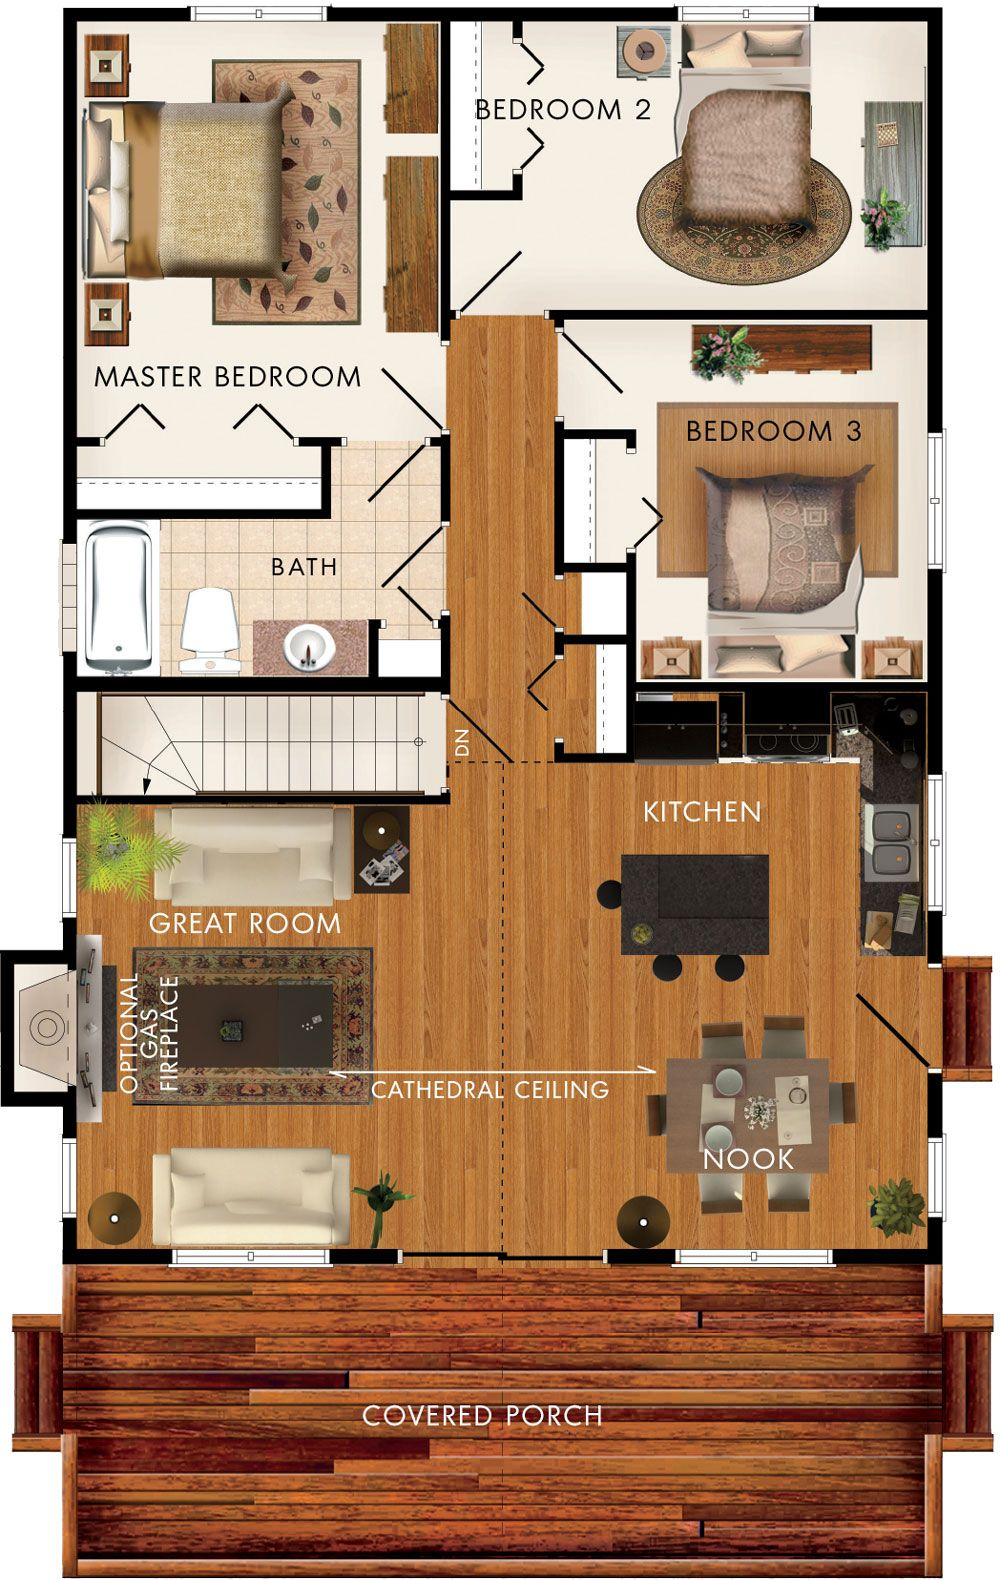 baywood ii floor plan no basement stairs means space for a